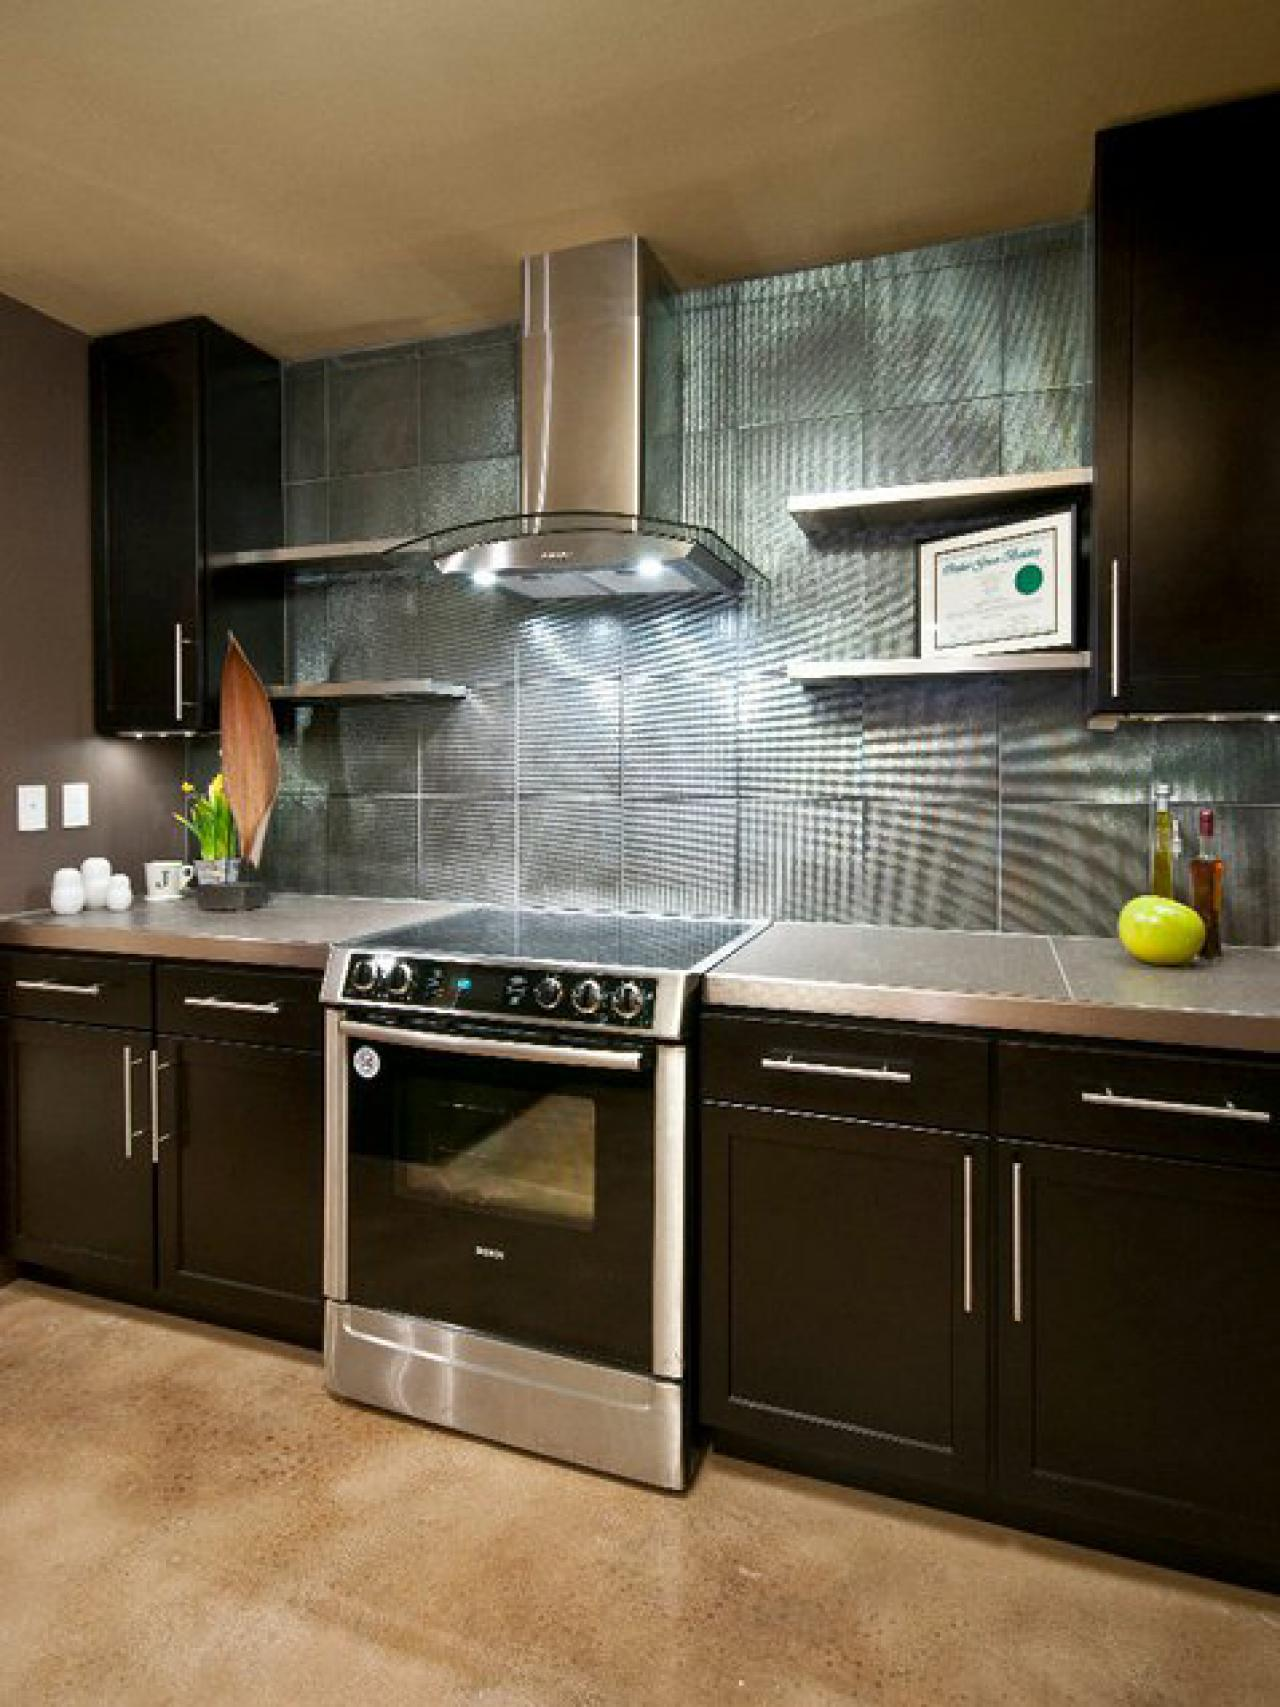 Do it yourself diy kitchen backsplash ideas hgtv pictures hgtv Modern kitchen design tiles